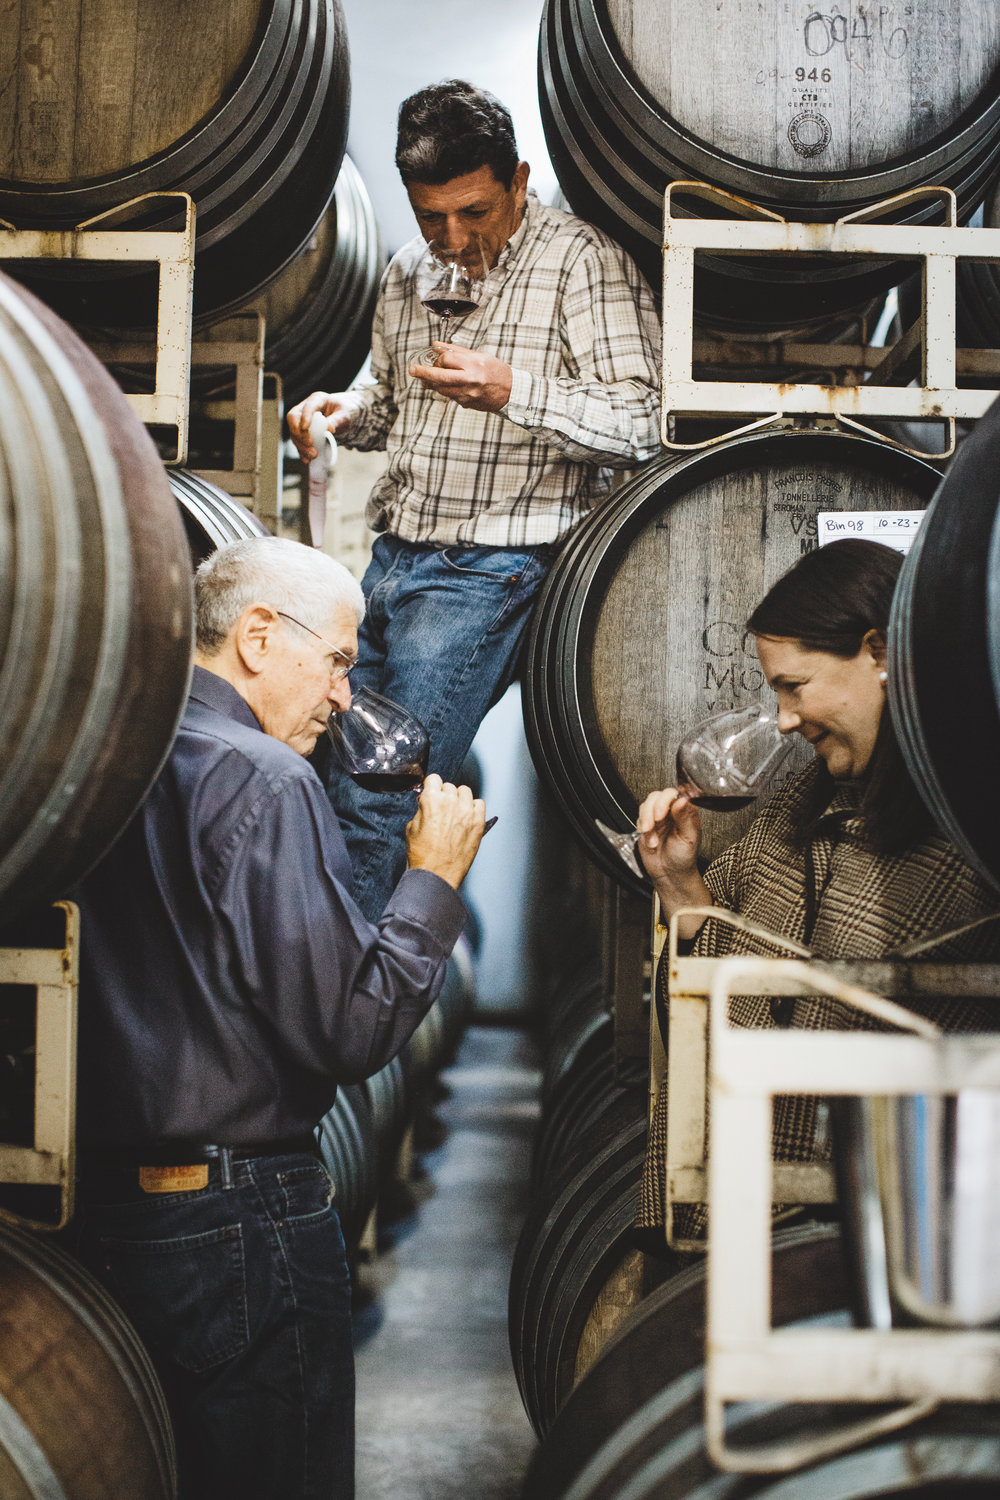 Cooper Mountain winemaker Gilles de Domingo; general manager Barbara Gross; and founder/owner Robert Gross. Photo courtesy of Cooper Mountain/Cheryl Juetten